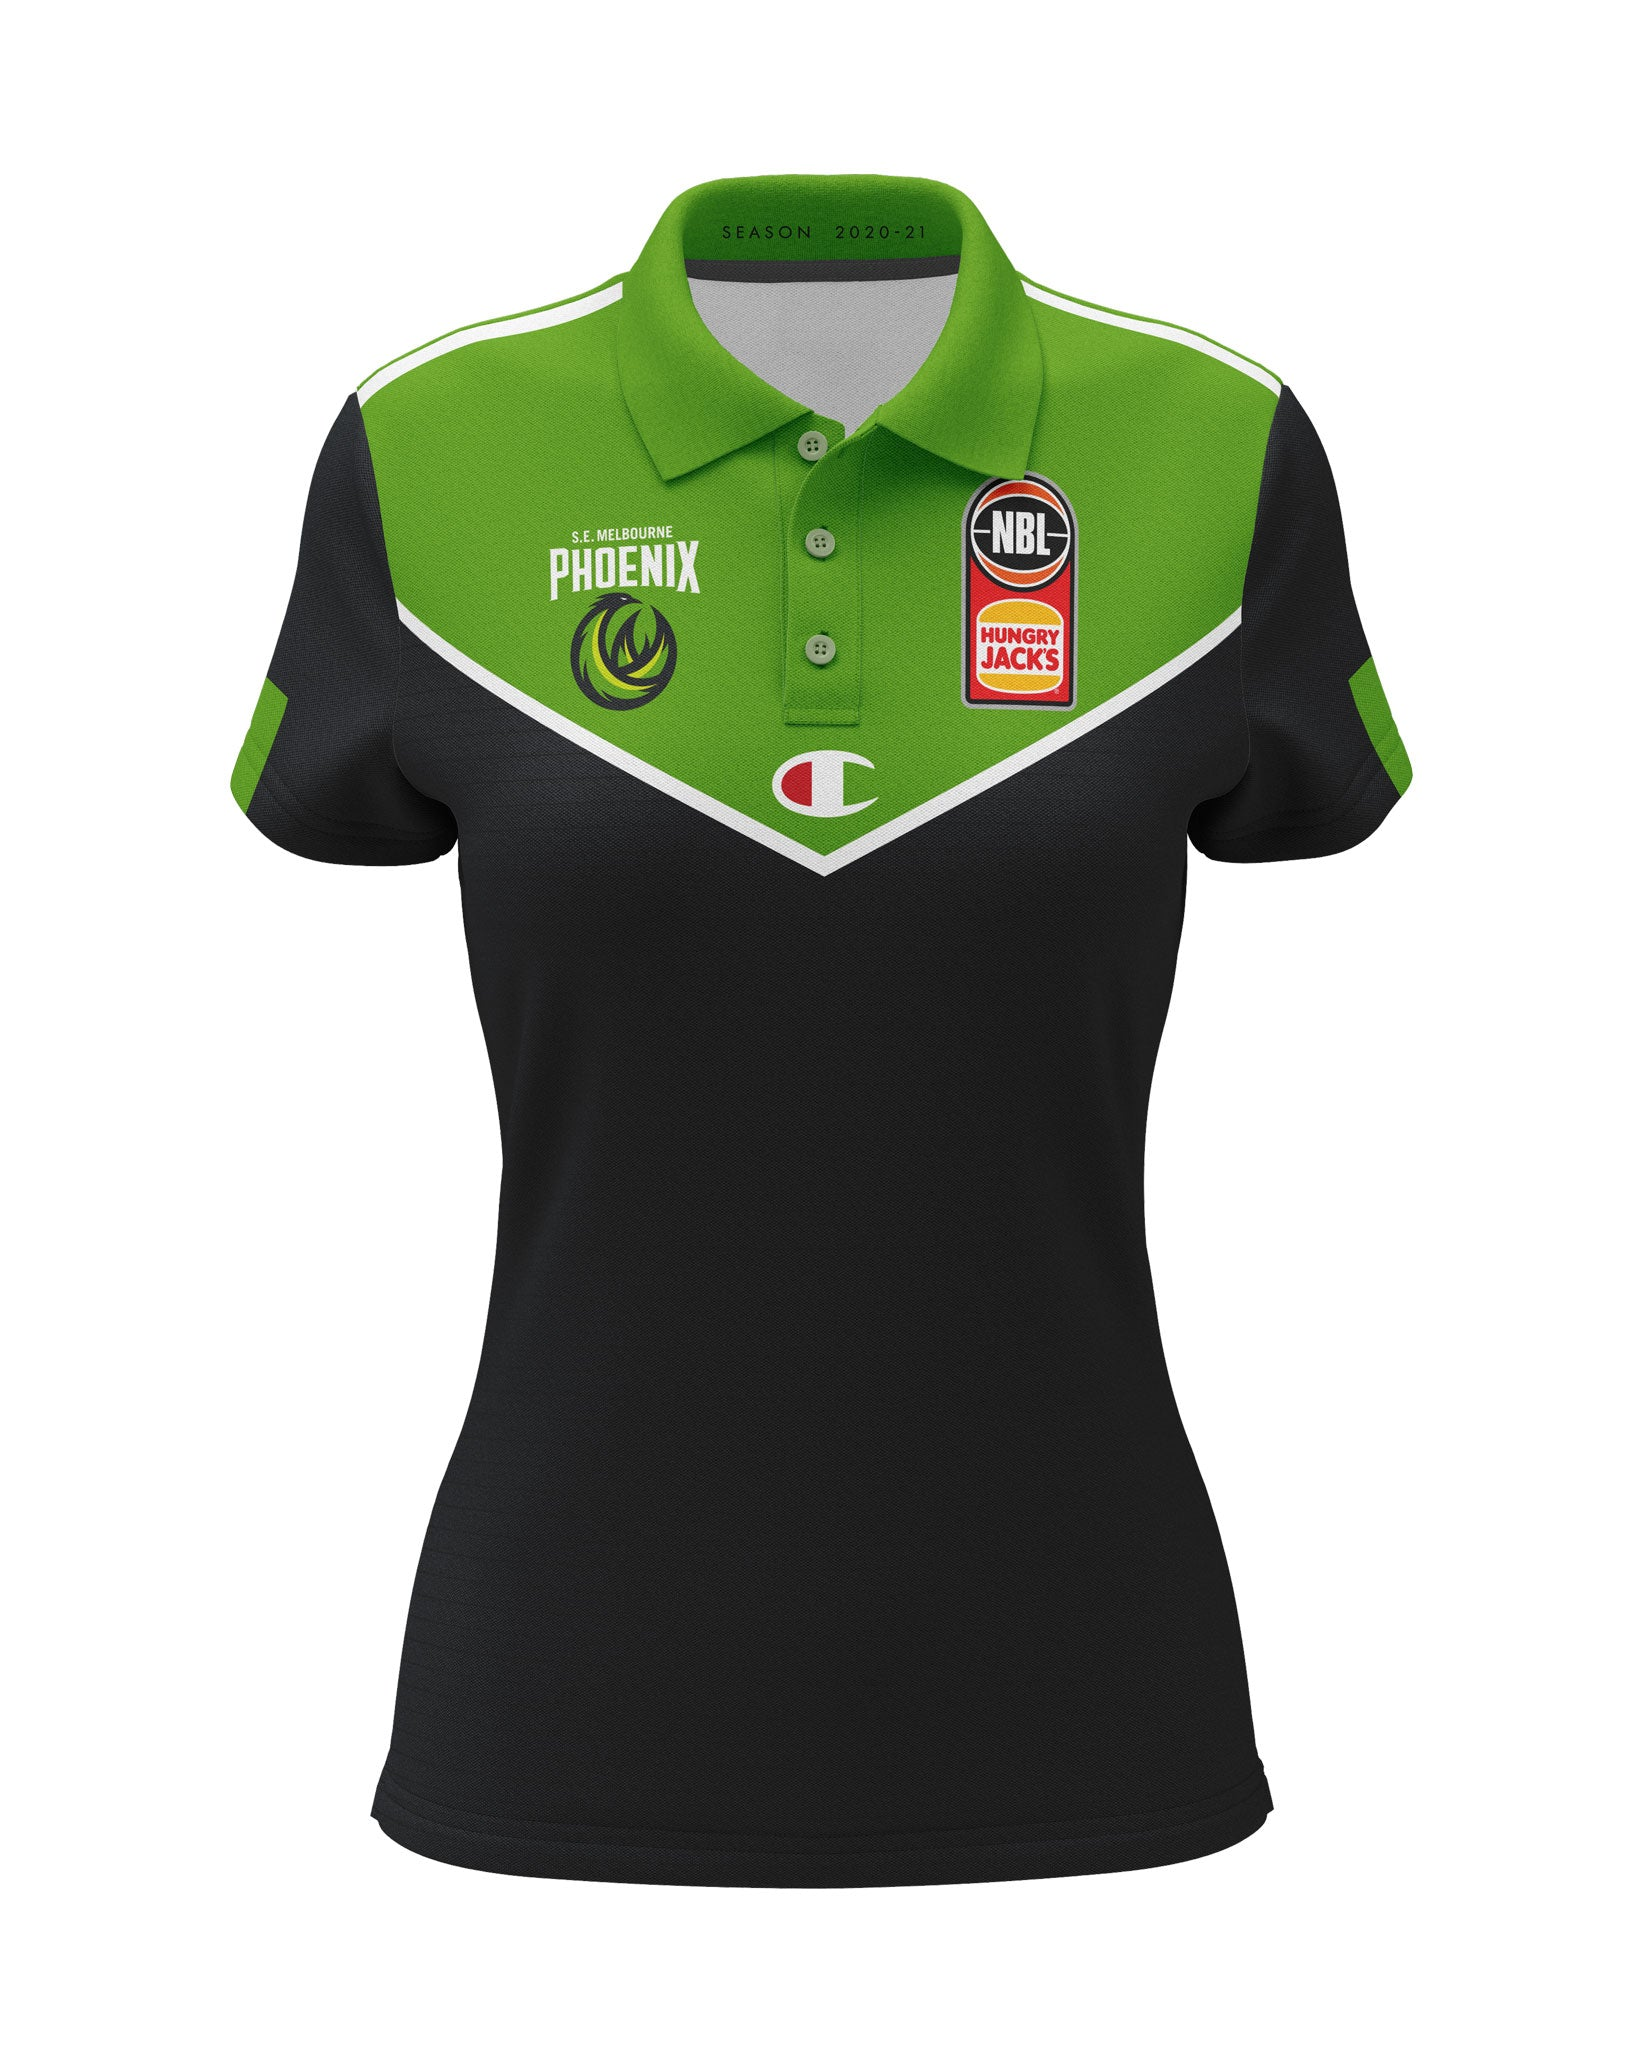 S.E. Melbourne Phoenix 20/21 Womens Sublimated Polo